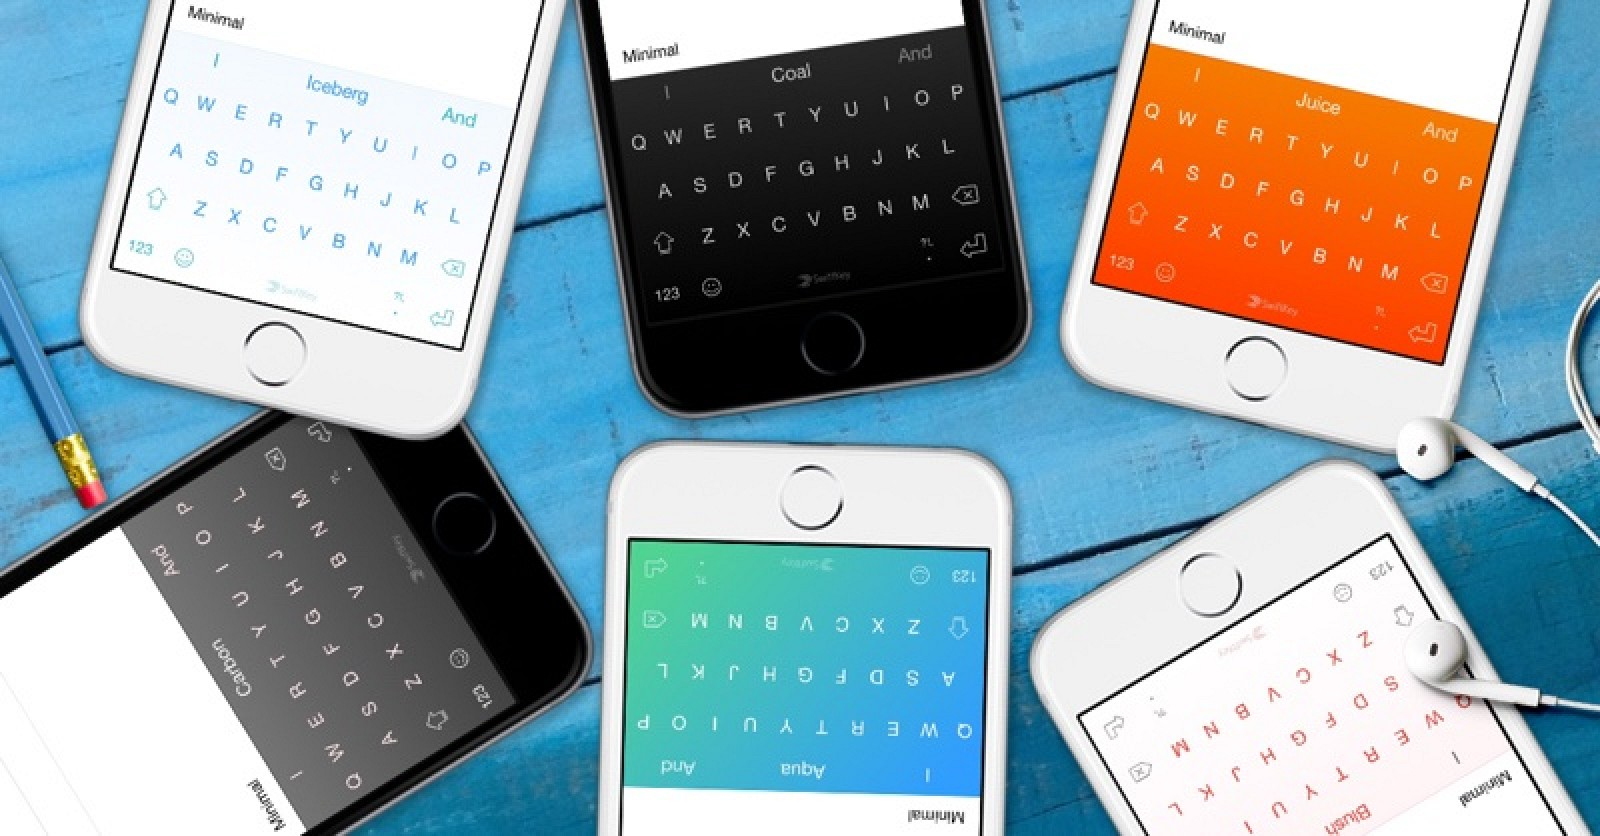 844e14dacb9 Small Number of SwiftKey Users Discover App Leaked Private Data to  Strangers - MacRumors